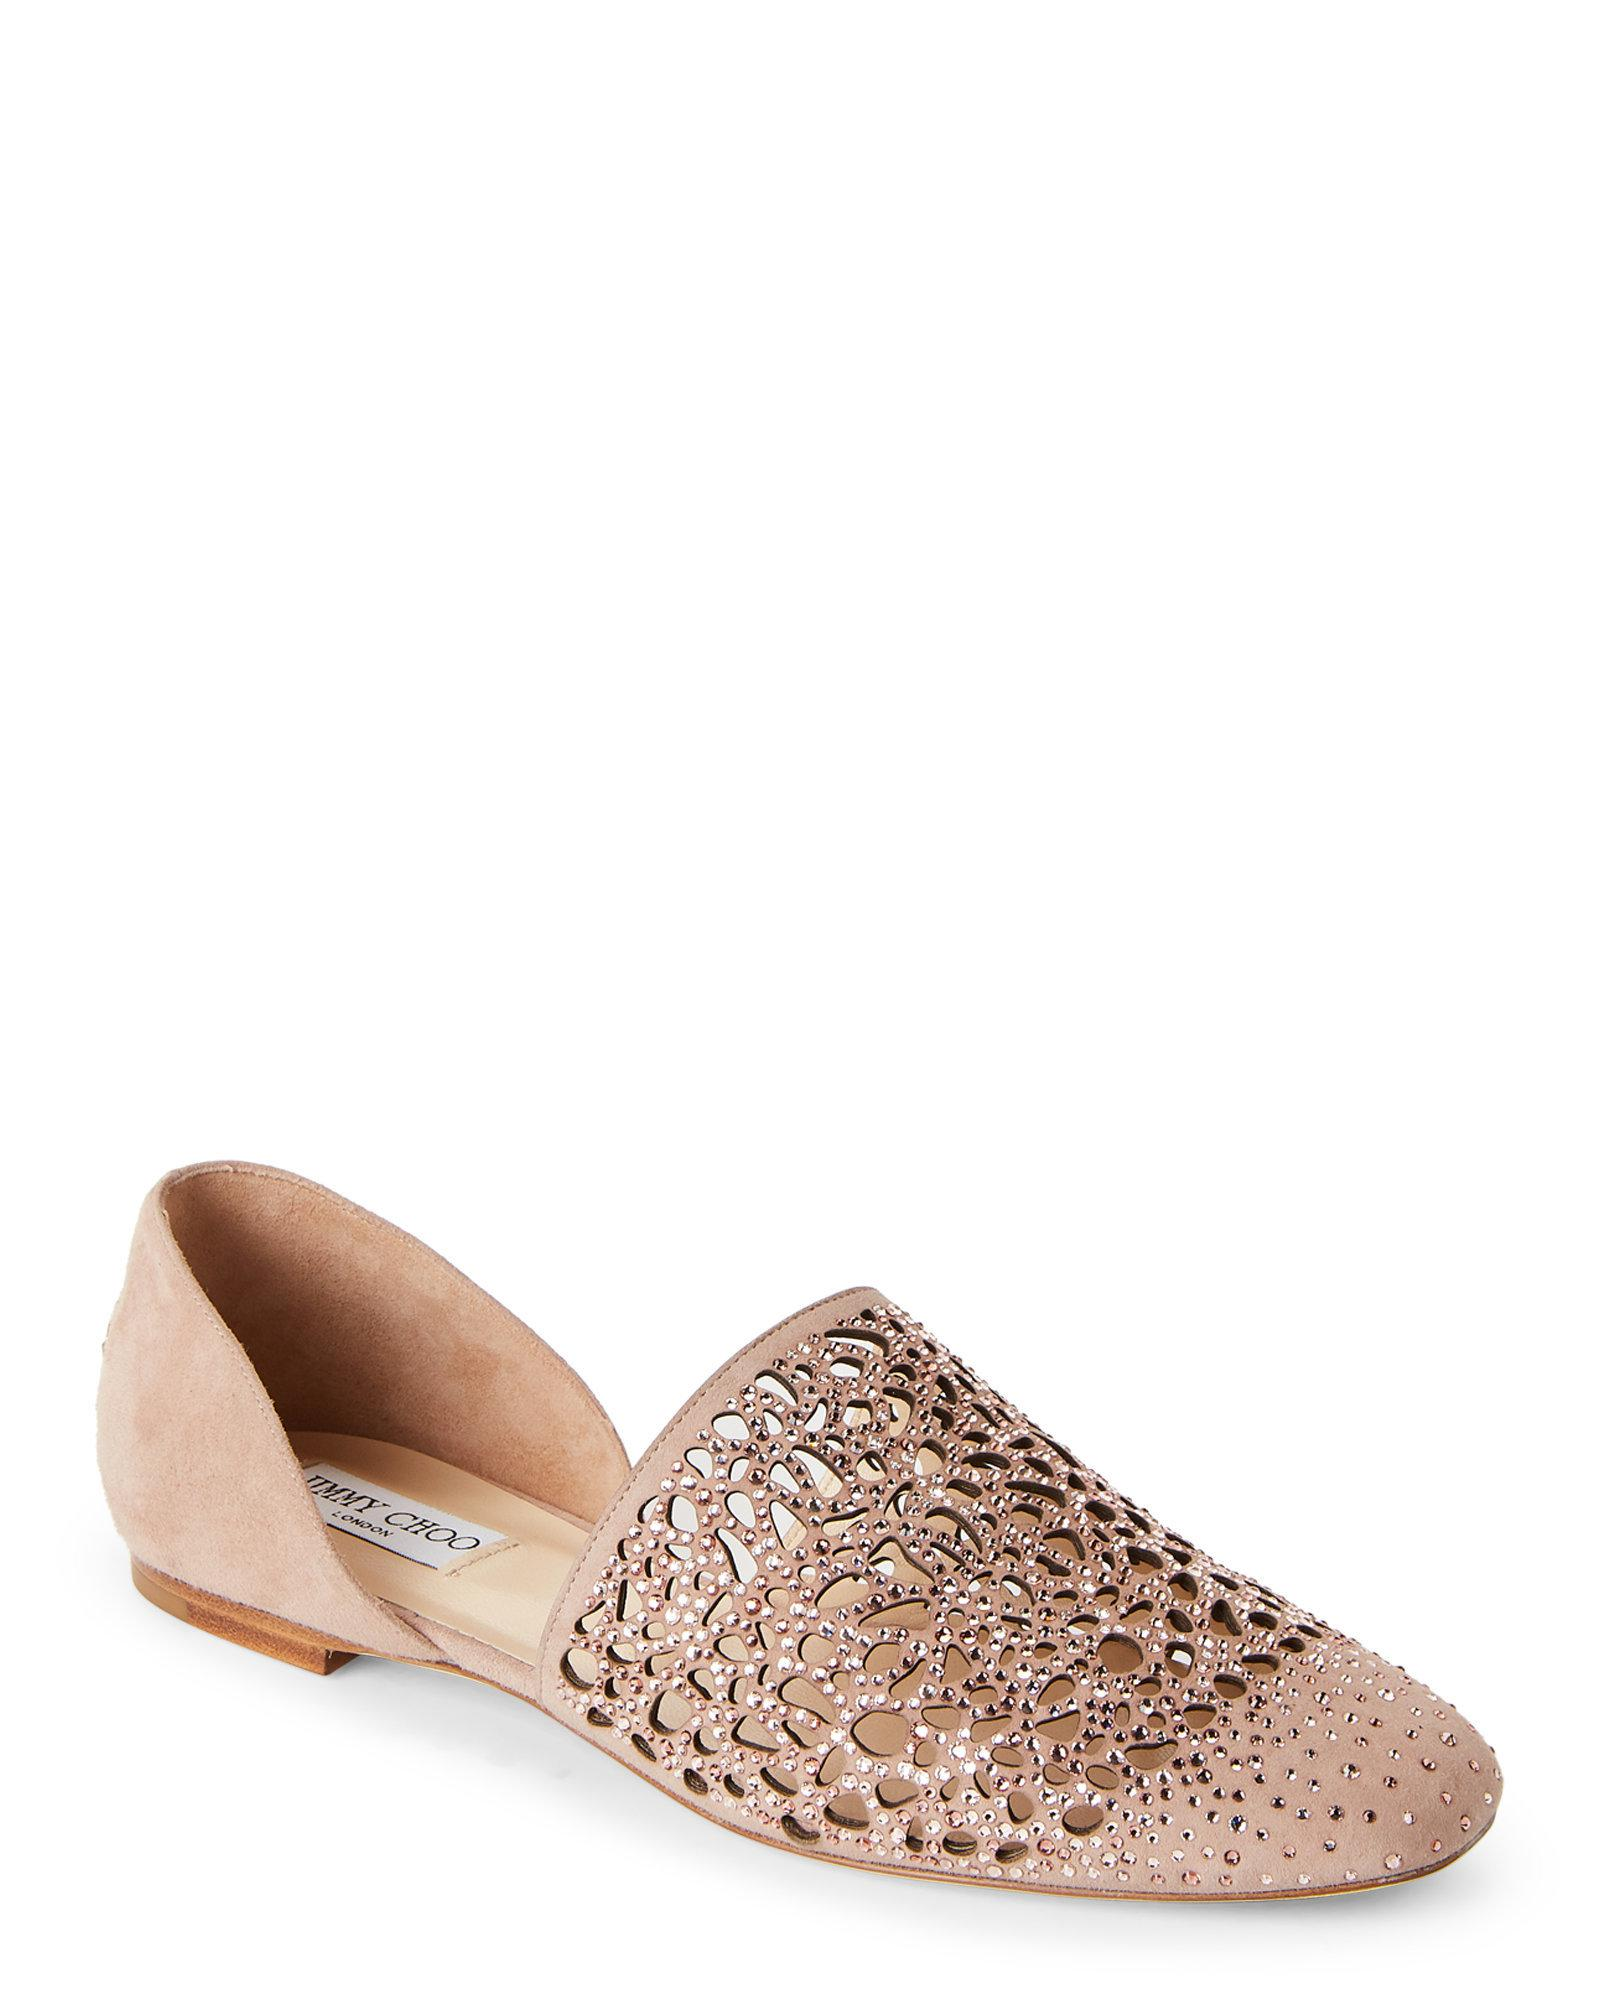 Jimmy Choo Embellished Laser Cut Flats looking for online C8mGVA